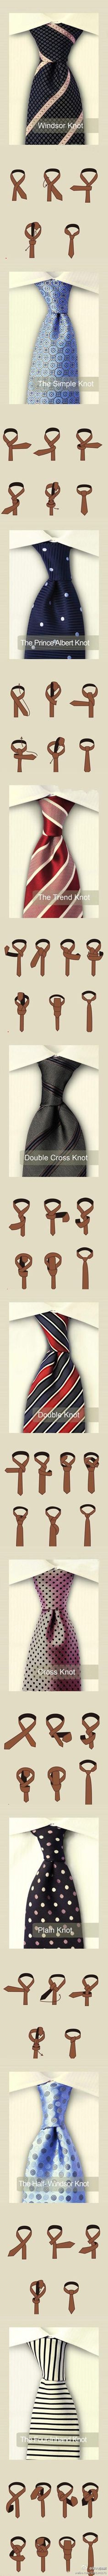 Every girl should know how to tie her man's tie